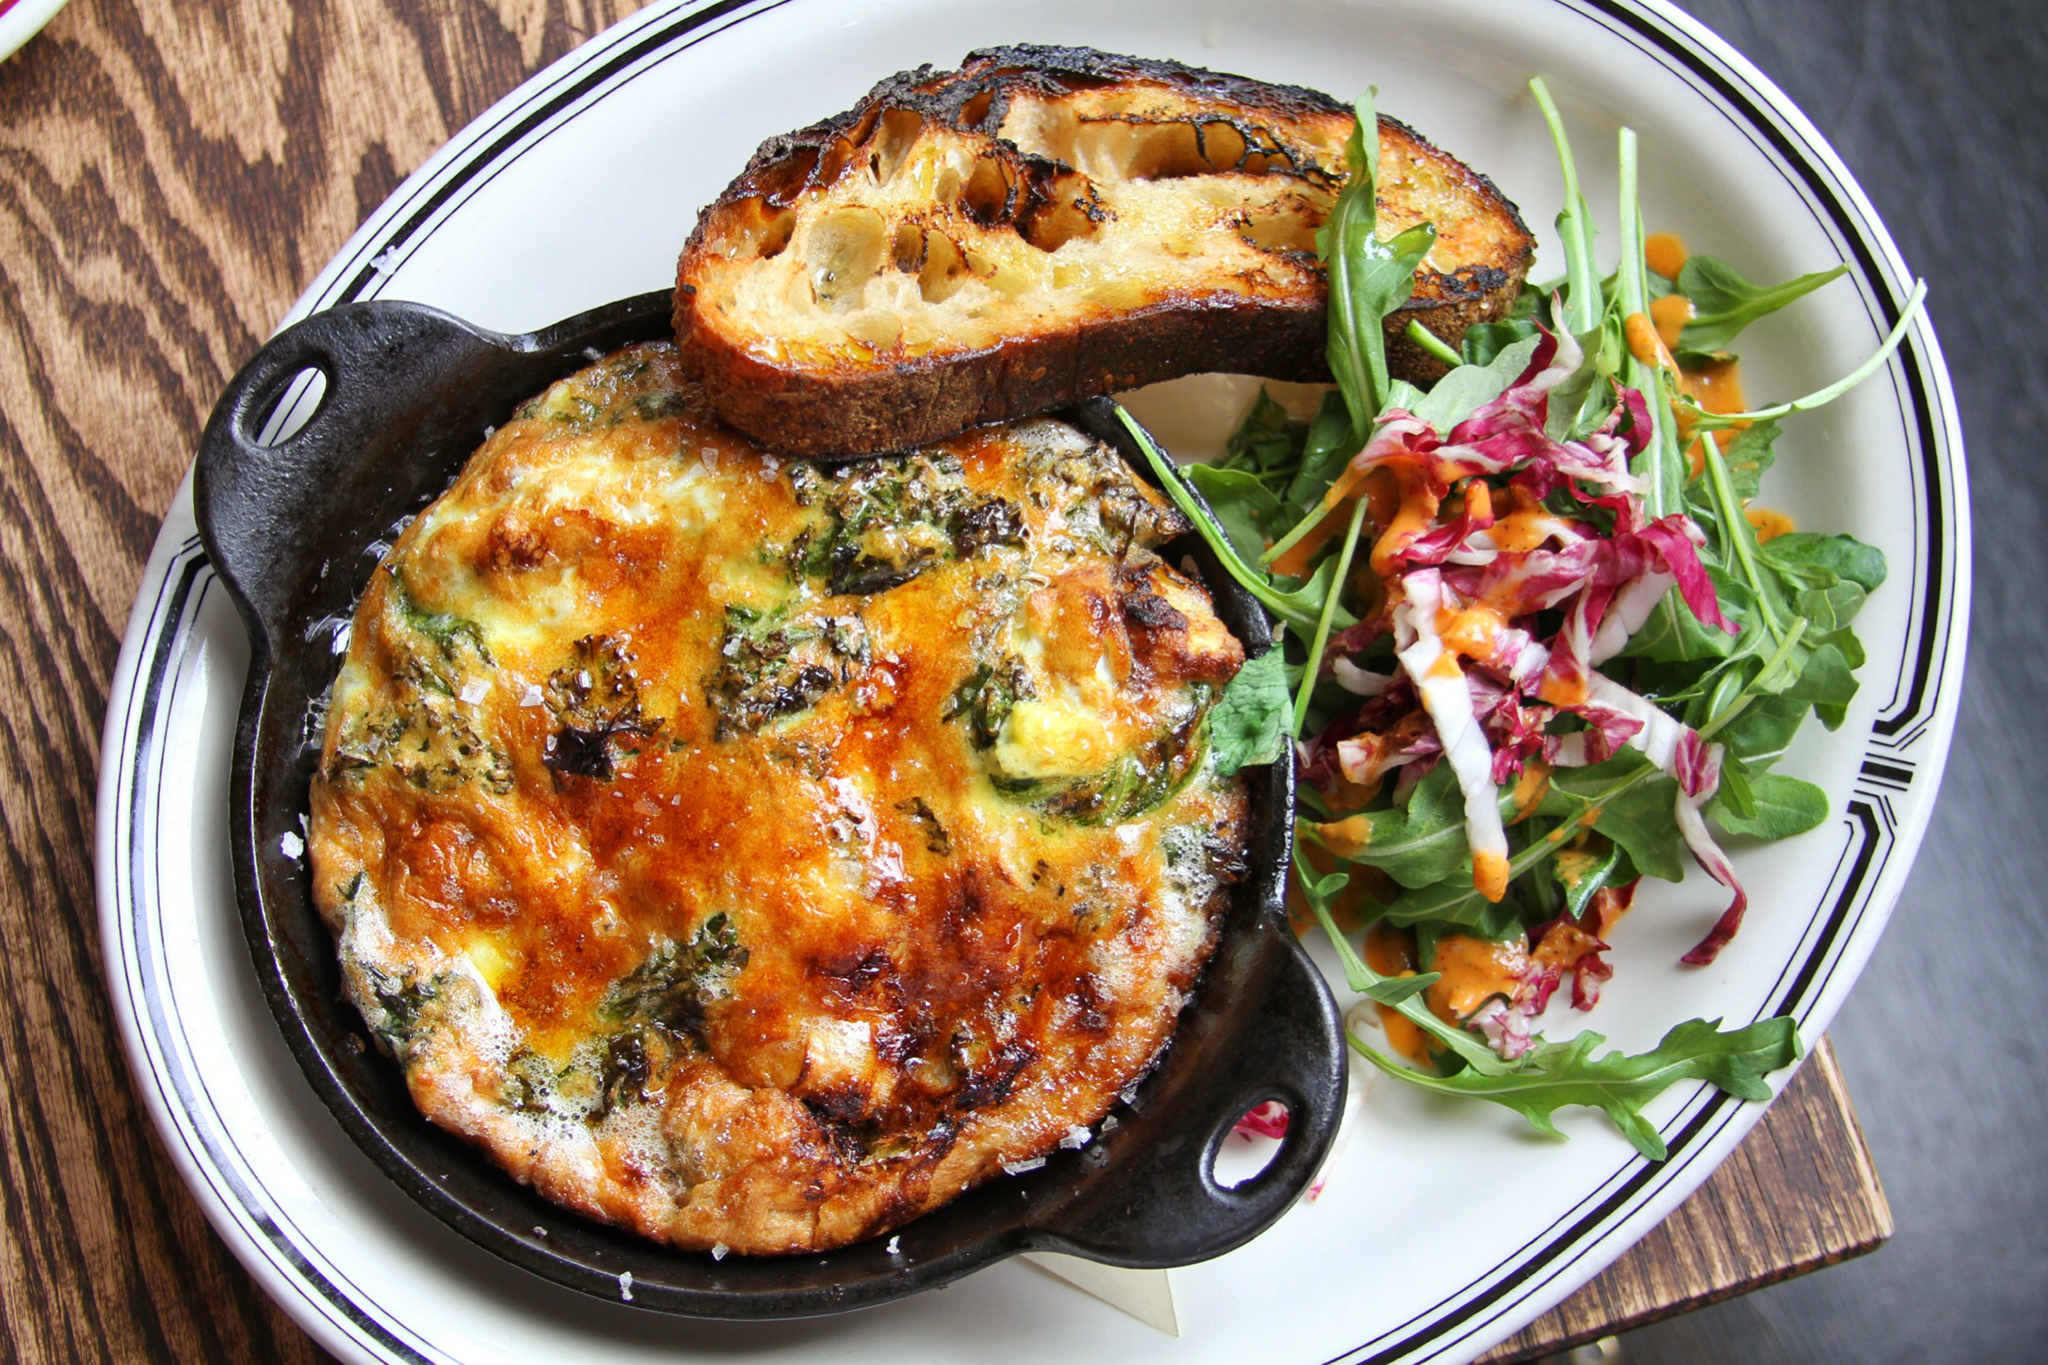 Check out the 11 best places to get New Year's Day brunch